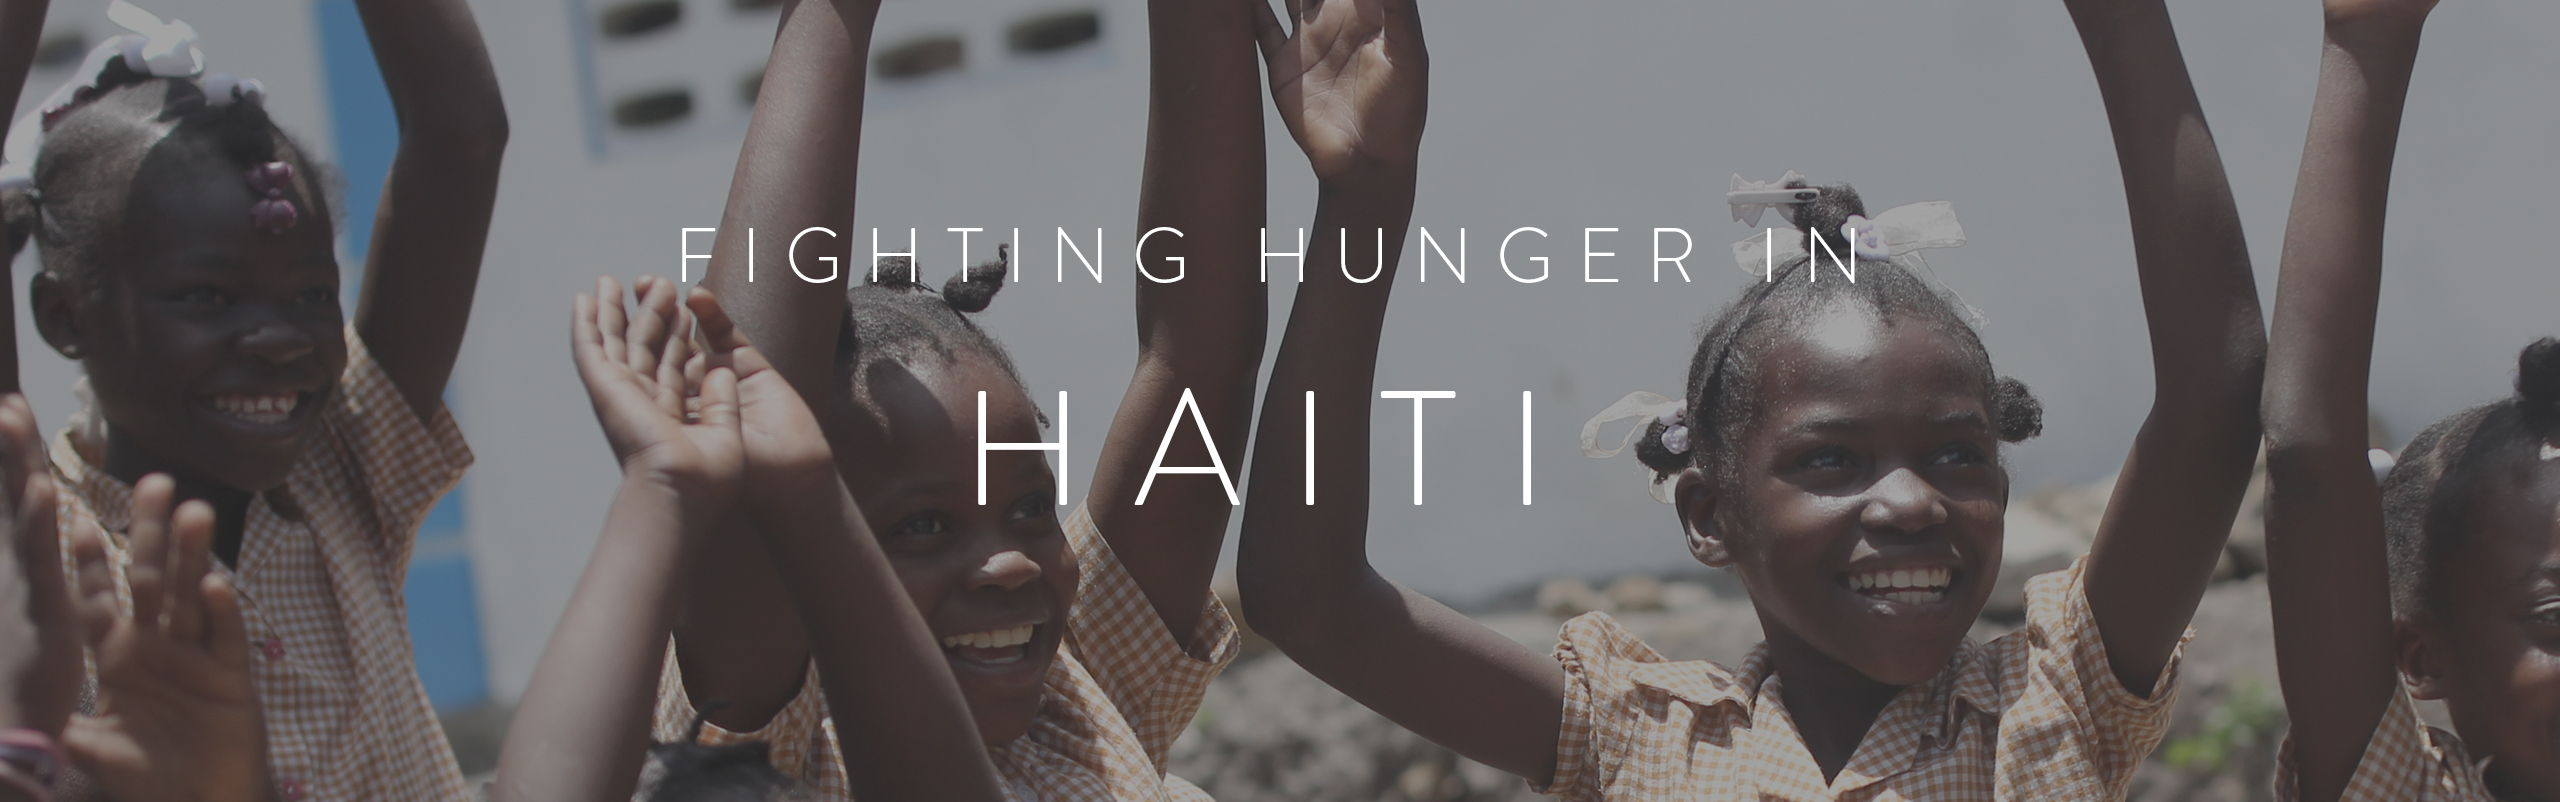 HALF UNITED Fighting Hunger In Haiti